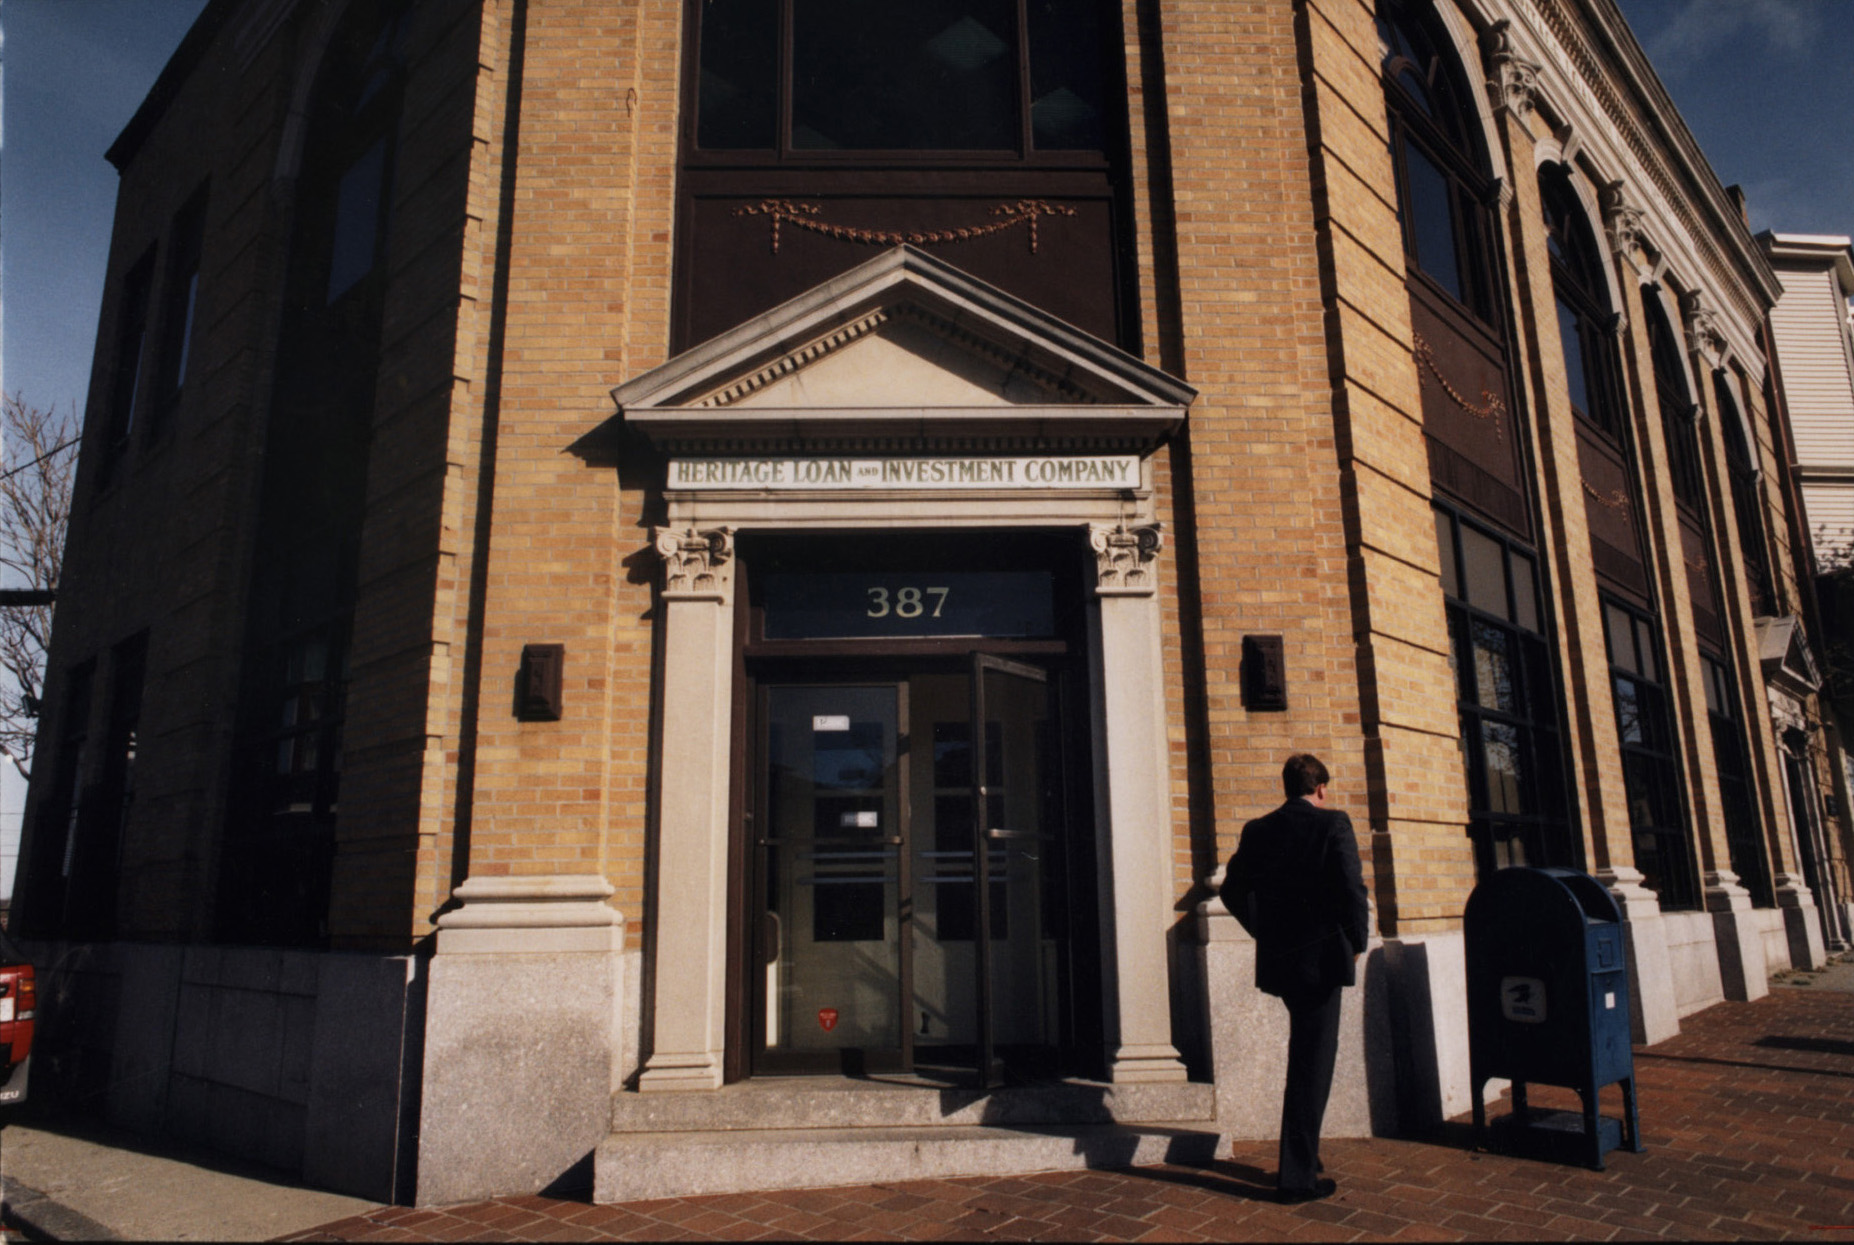 The Heritage Loan and Investment Company on Atwells Avenue in Federal Hill. Joe Mollicone Jr.'s father had been Raymond Patriarca's banker, and there were persistent rumors that Heritage was mob-affiliated. Courtesy of The Providence Journal.